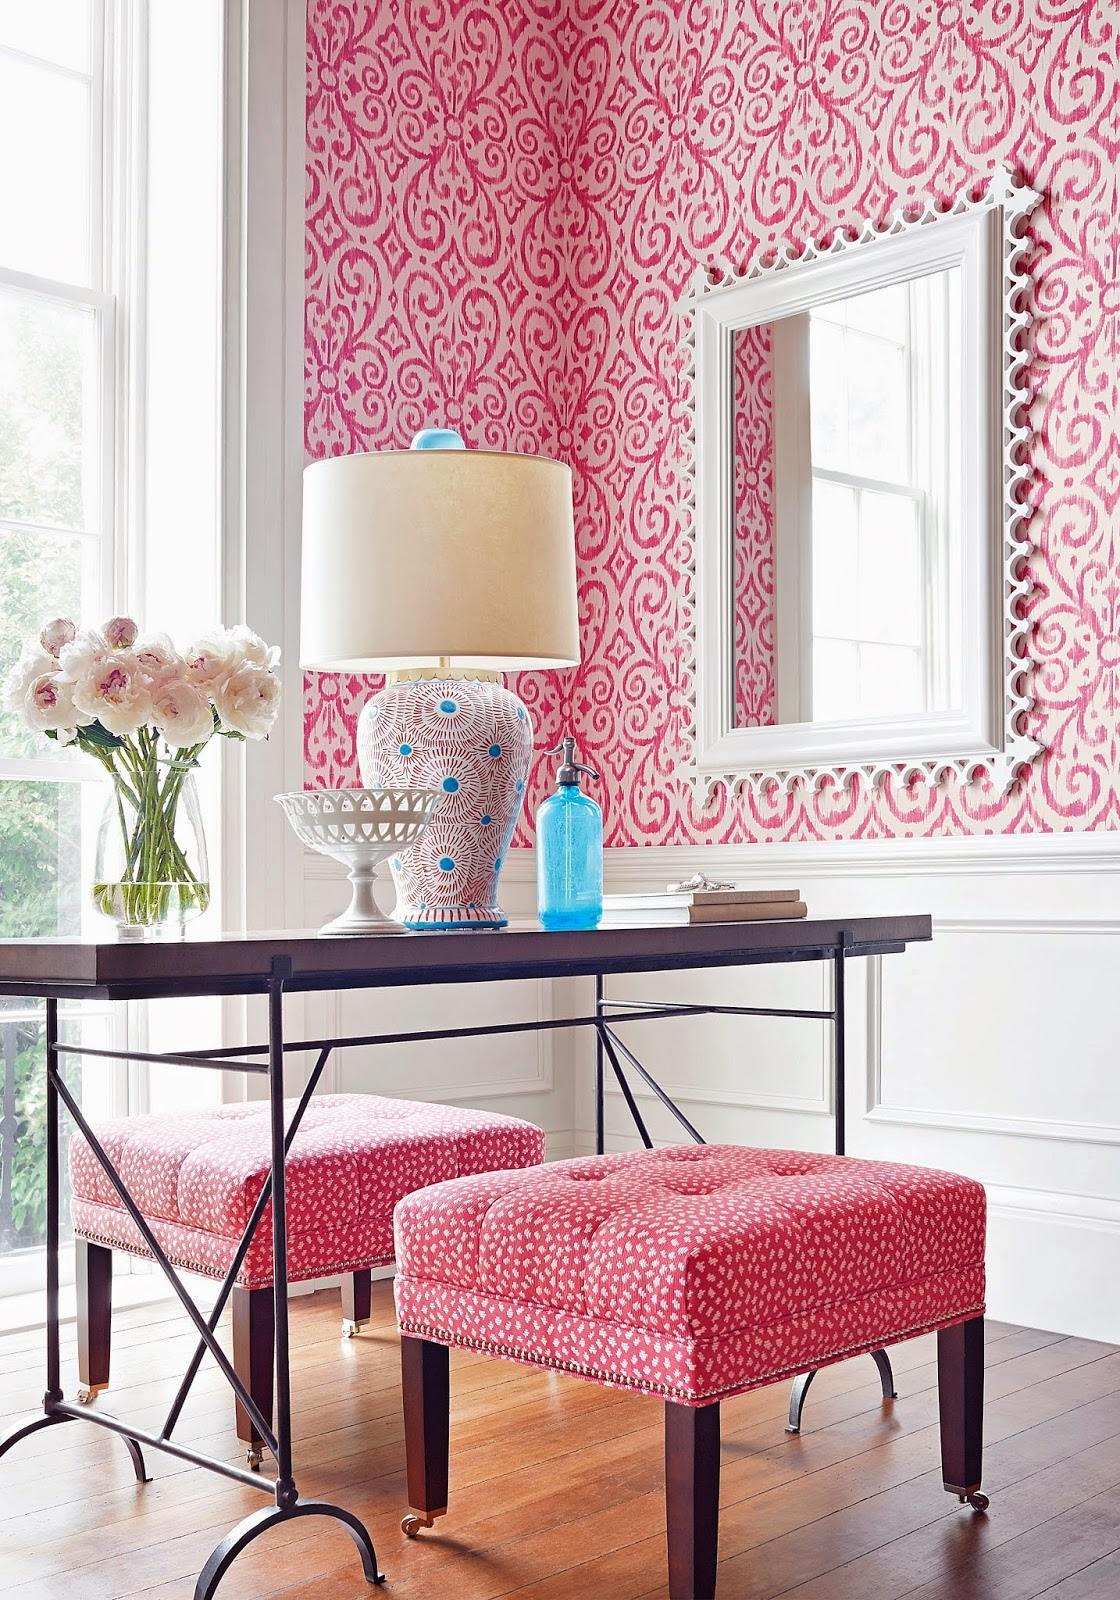 http://thibautdesign.com/catalog/product/details/product/patara_ikat_t64144/material/wallpaper/colorway/fuschia_800/